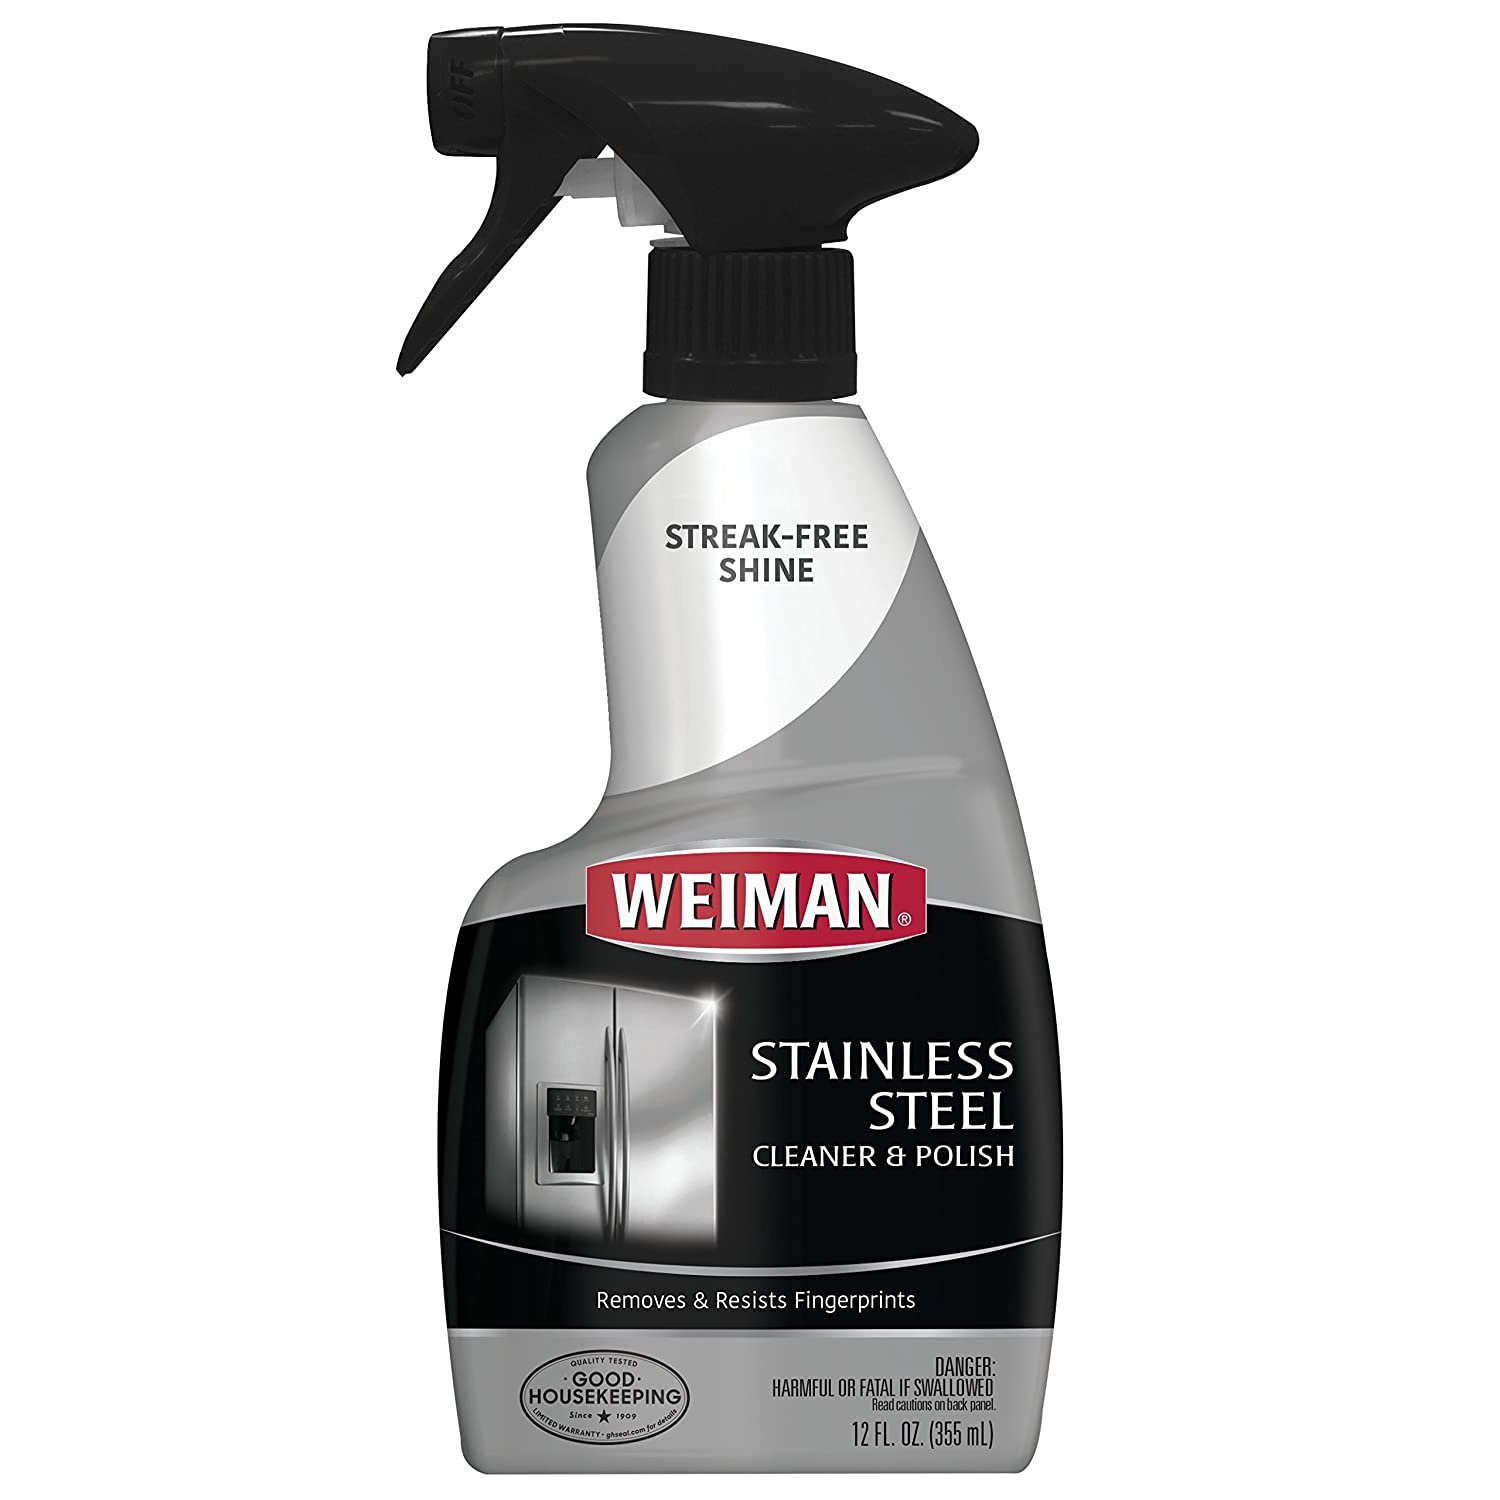 Weiman Stainless Steel Cleaner & Polish Trigger Spray - Protects Appliances From Fingerprints and Leaves a Streak-free Shine - 12 fl. Oz.